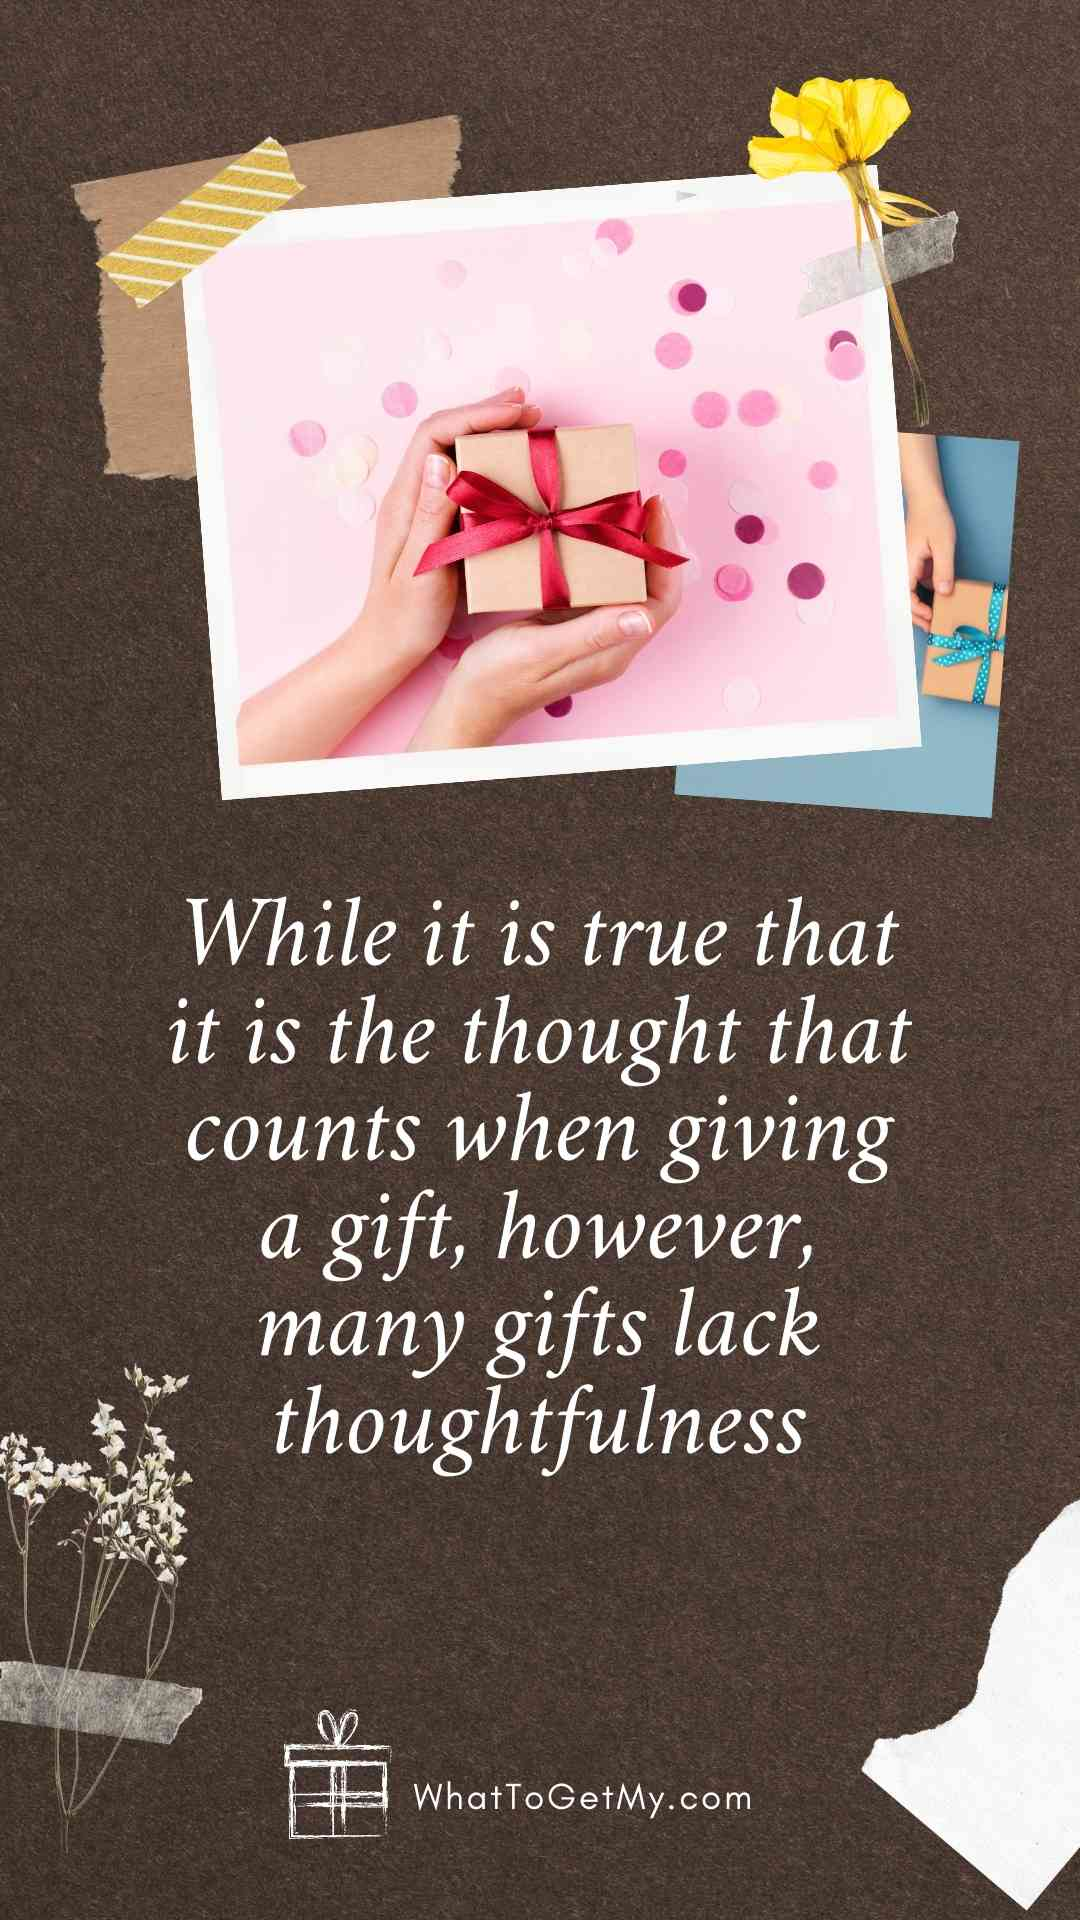 While it is true that it is the thought that counts when giving a gift, however, many gifts lack thoughtfulness WTGM